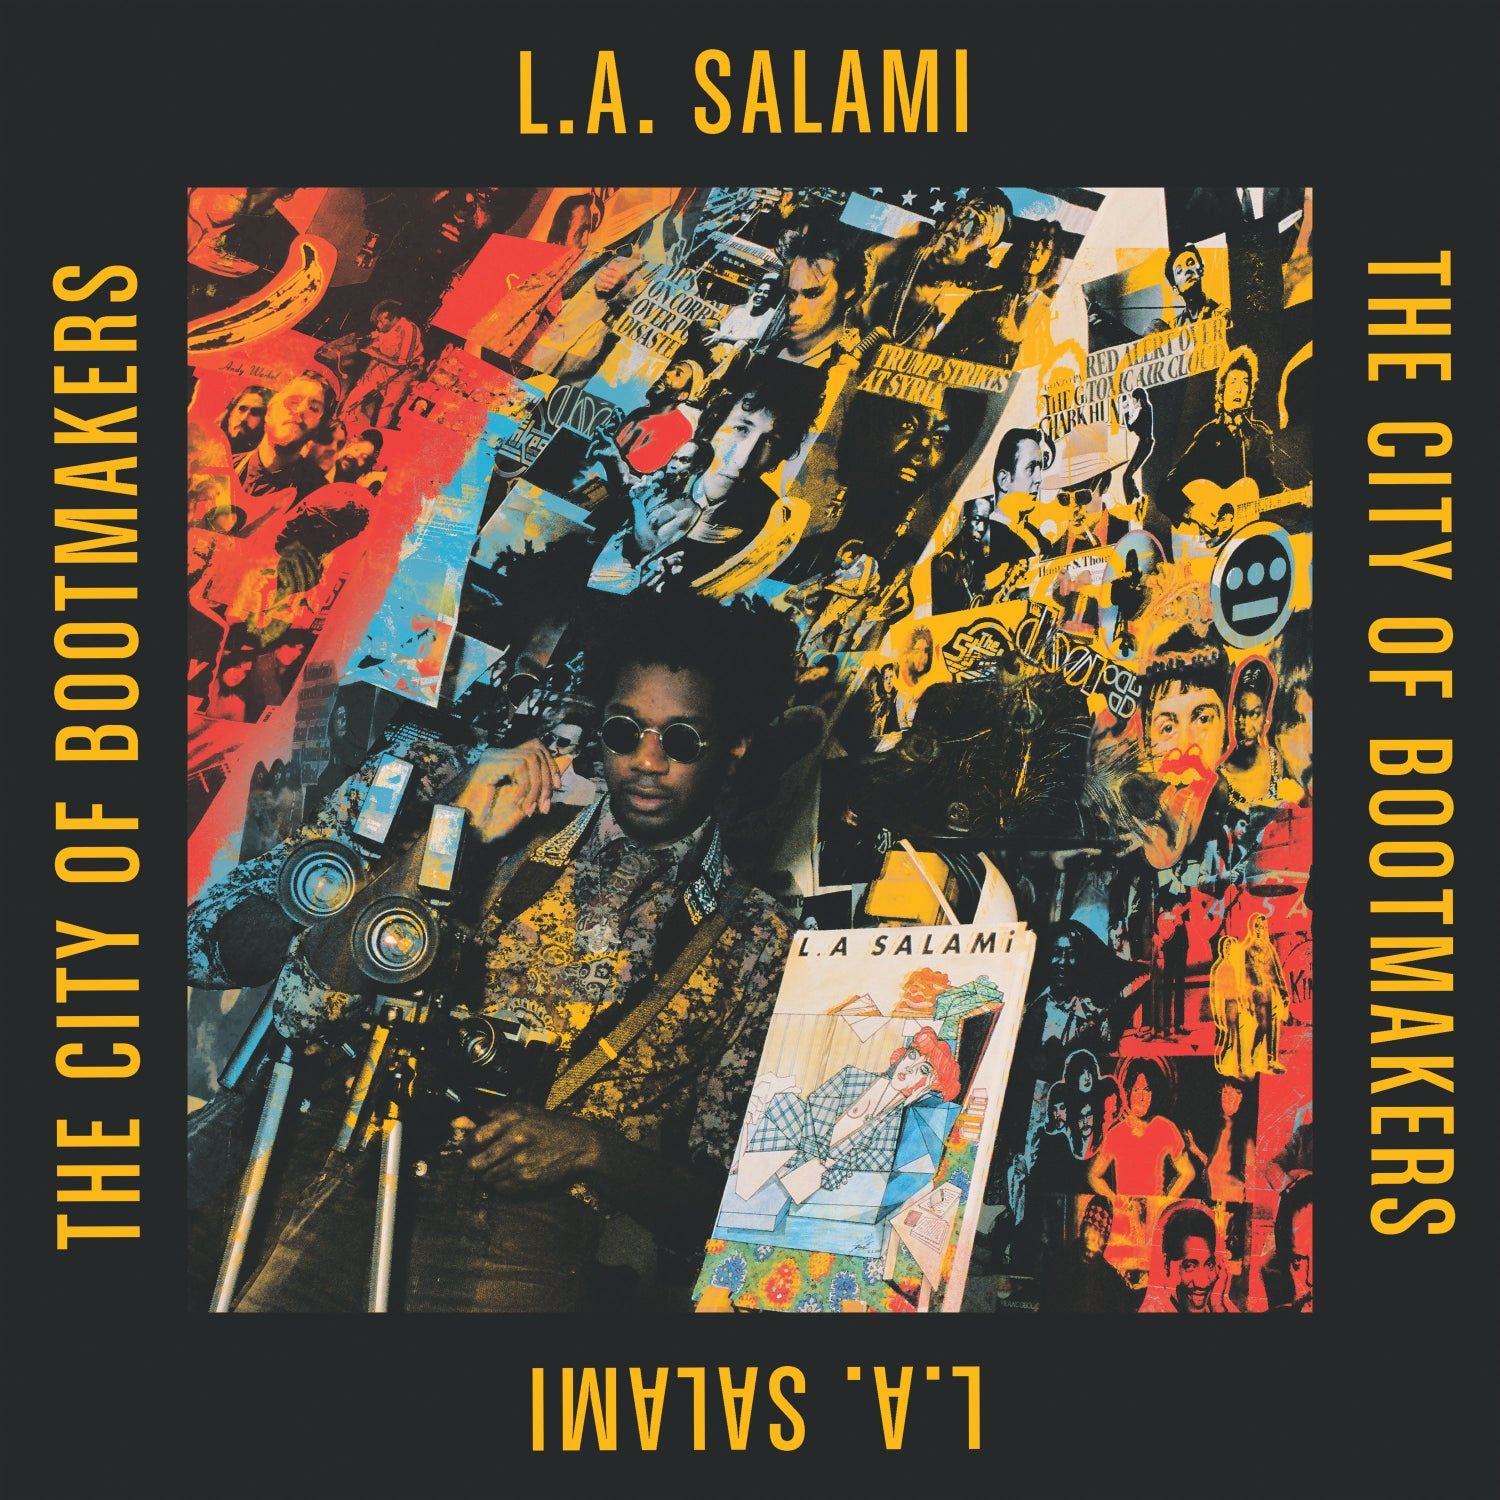 Image of L.A. Salami - The City of Bootmakers